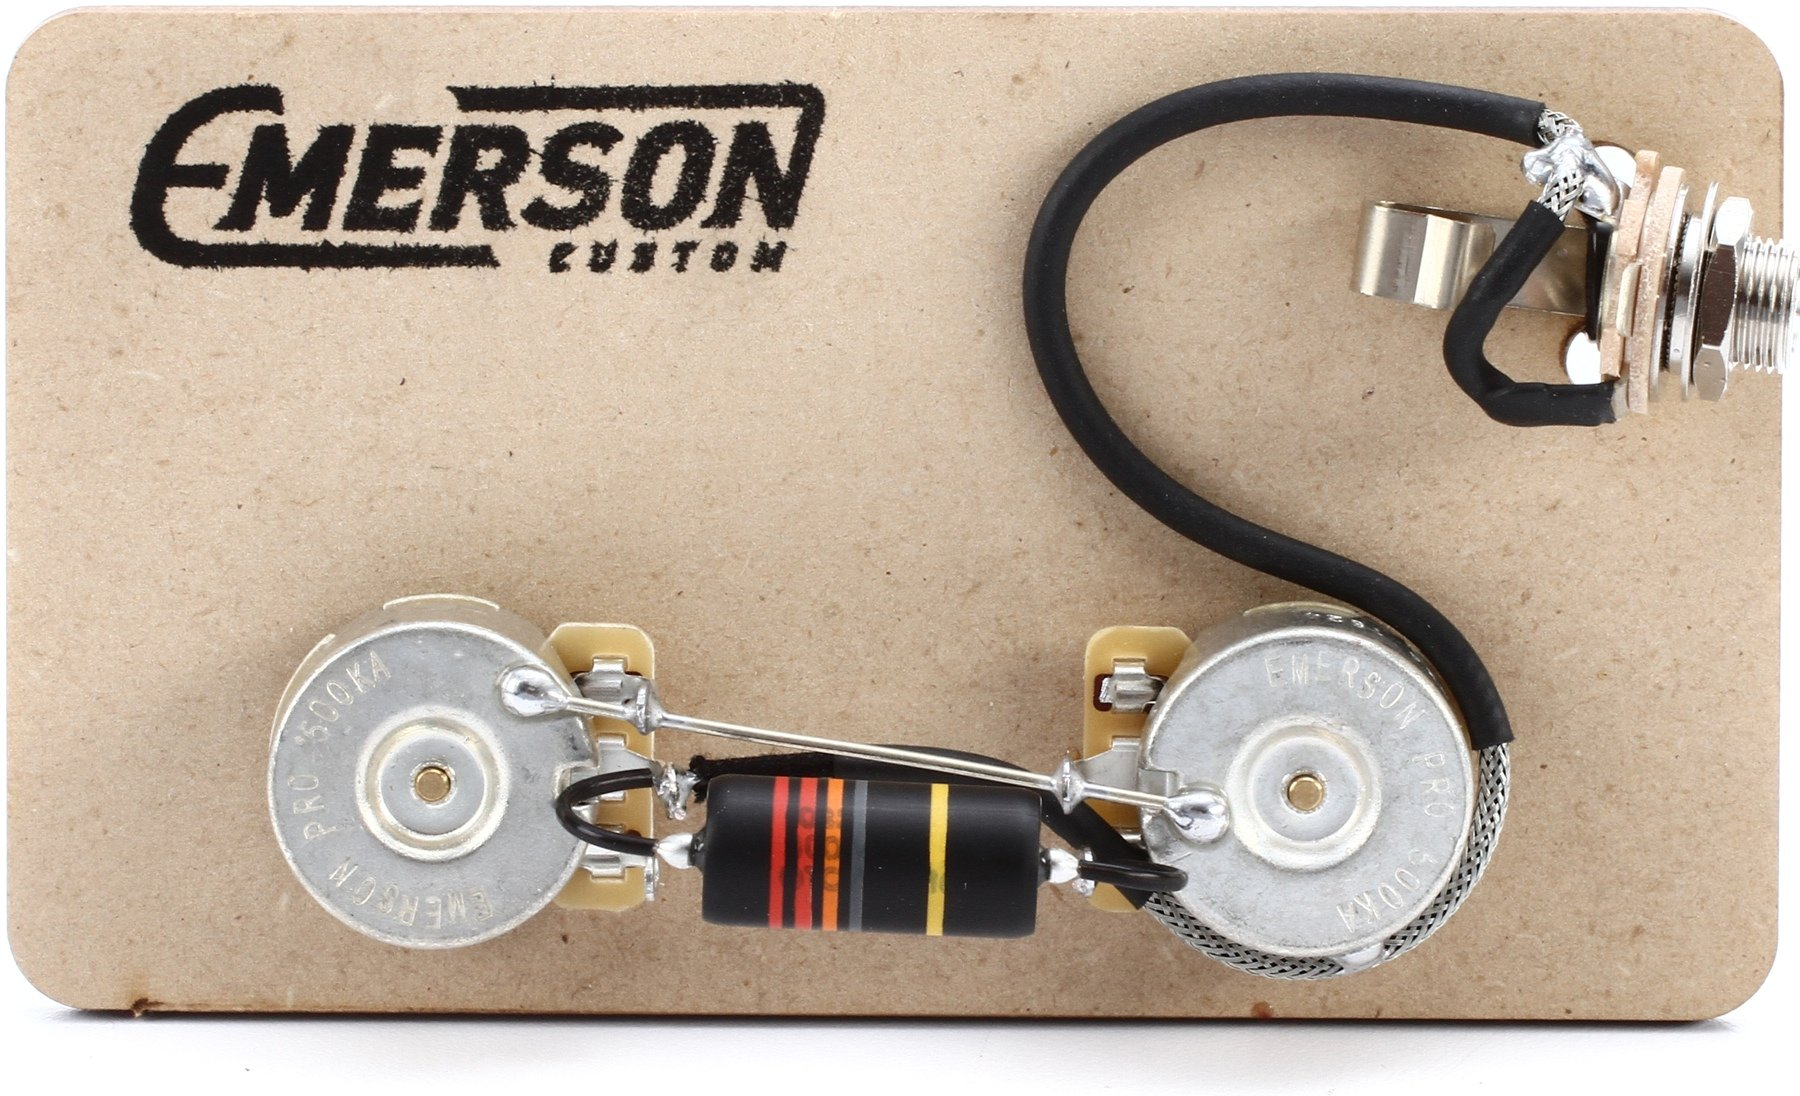 hight resolution of emerson custom prewired kit for gibson les paul junior image 1